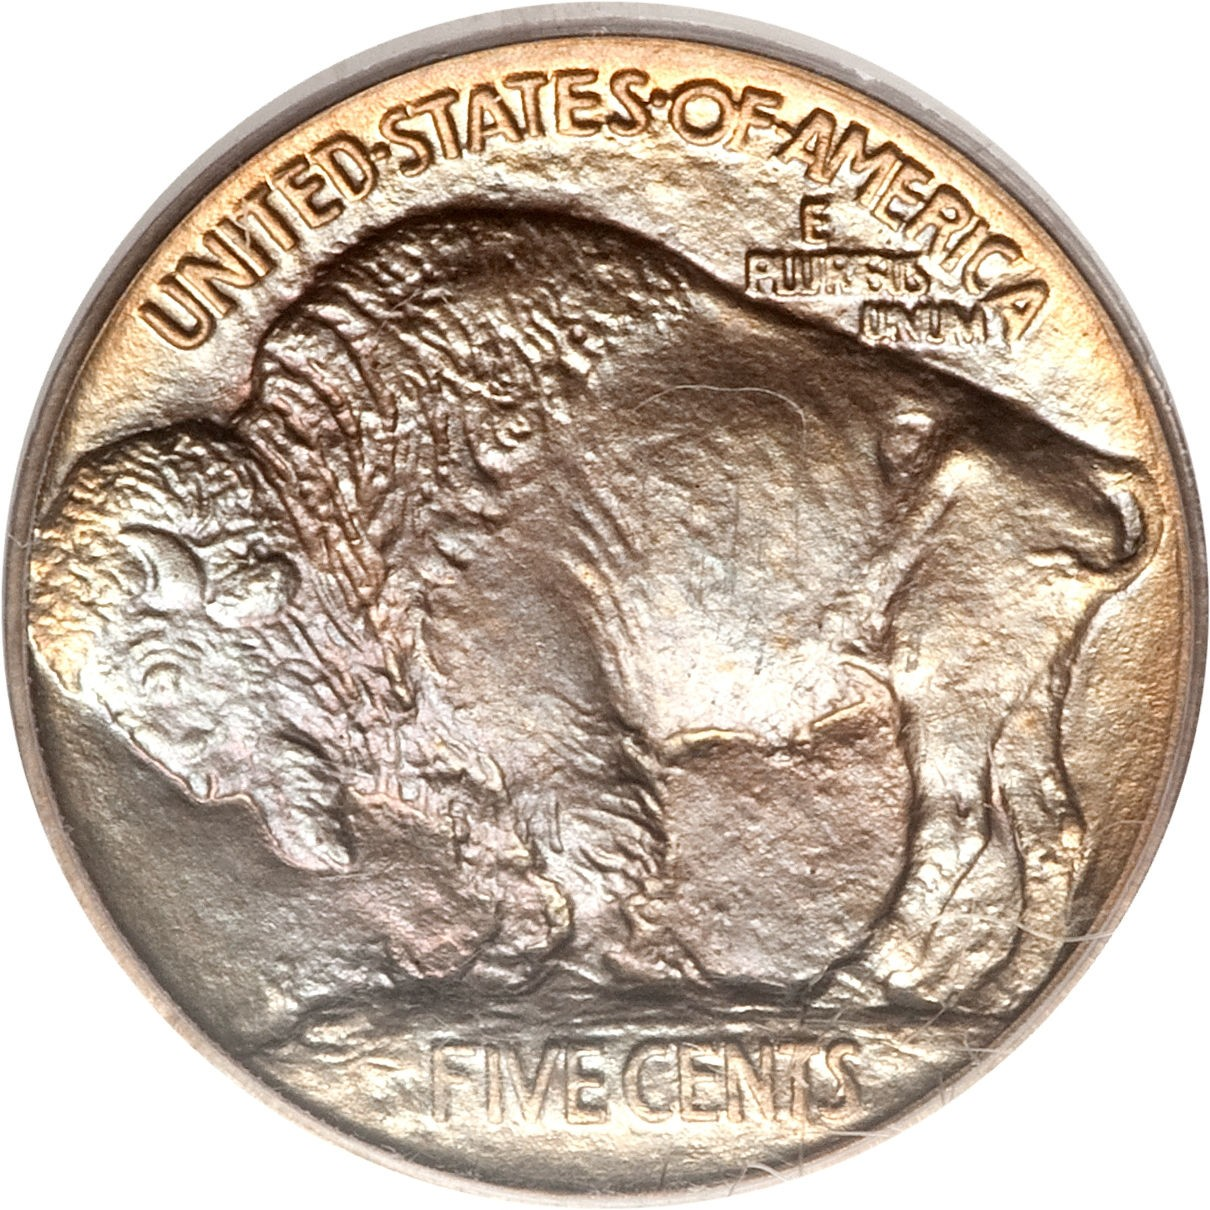 United States 5 Cents Buffalo Nickel (Indian Head)